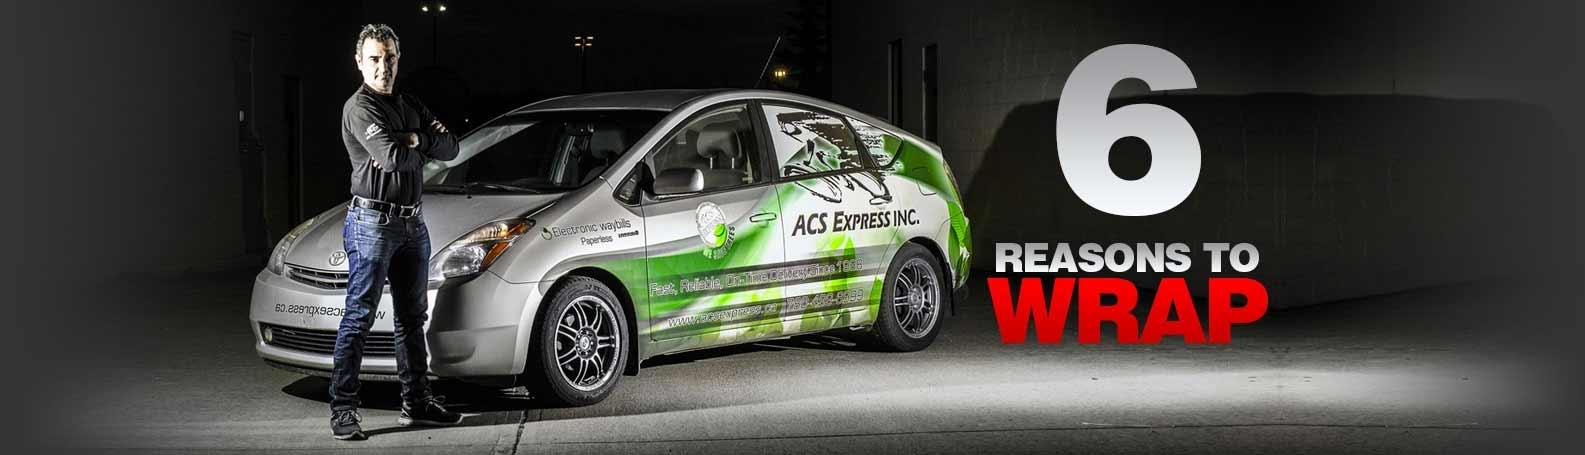 0339864ab4 6 Reasons to Wrap a Vehicle - Fleet FX Graphics